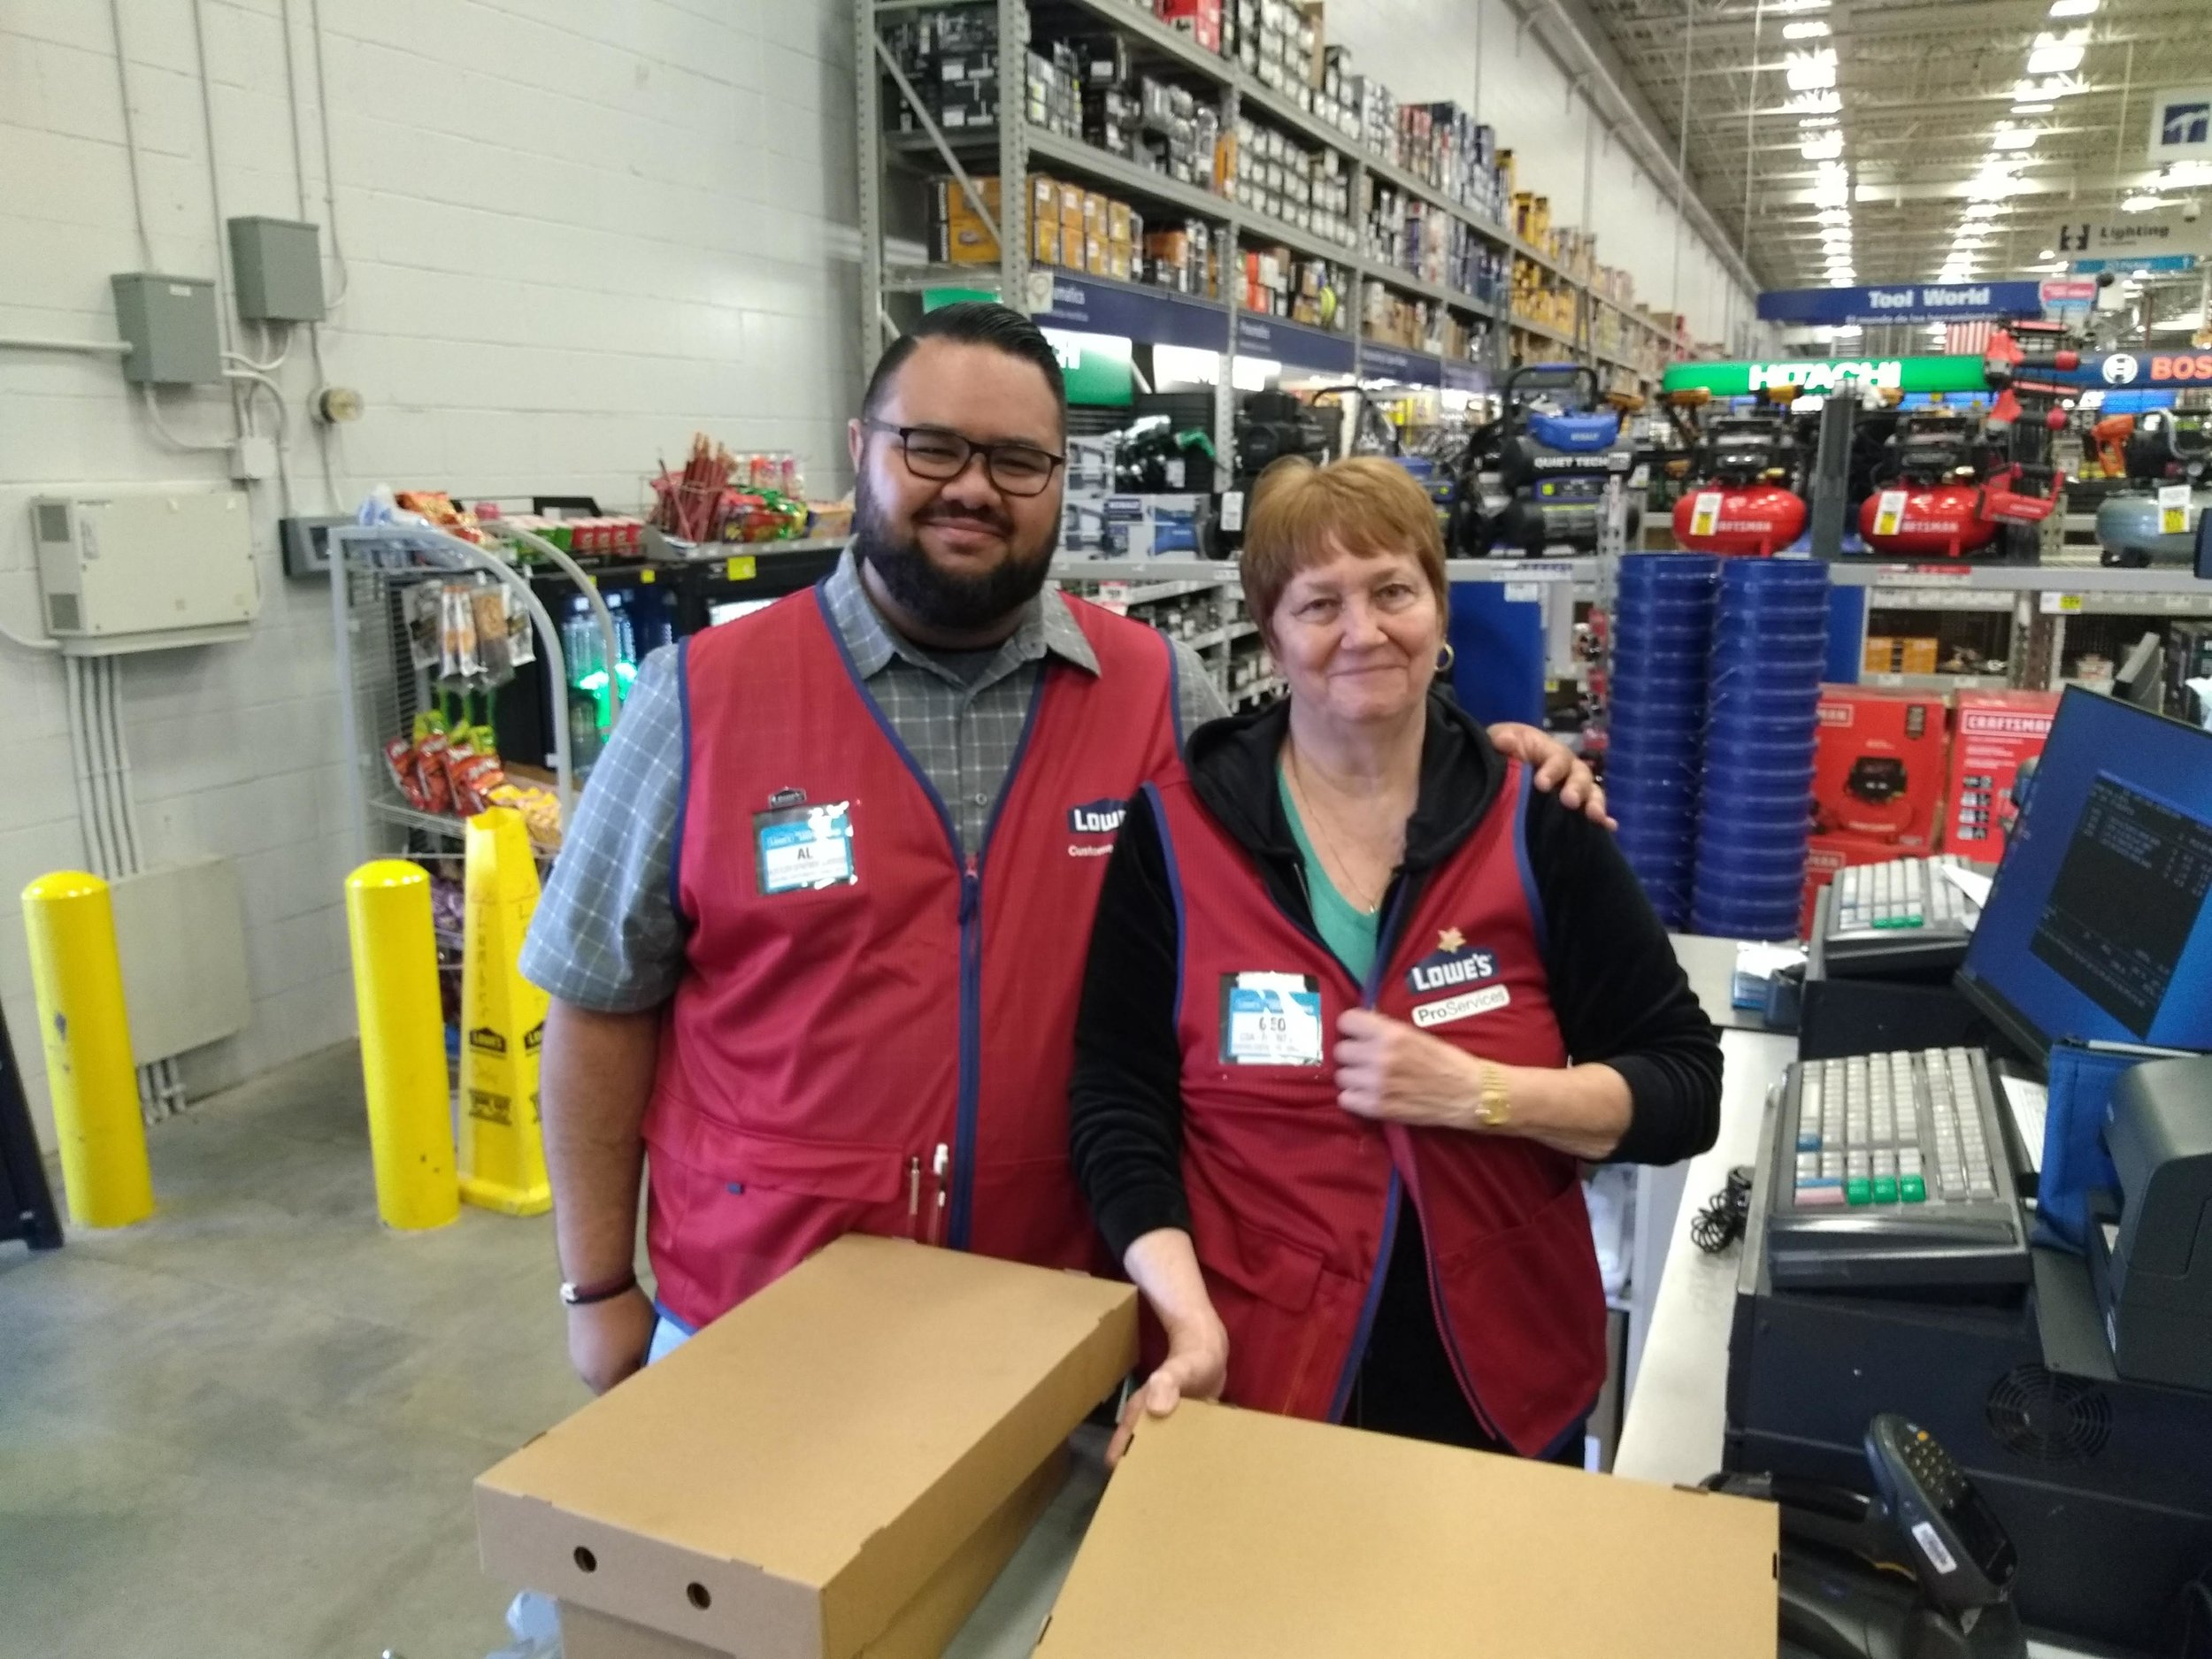 Lowe's Employees helping with costs